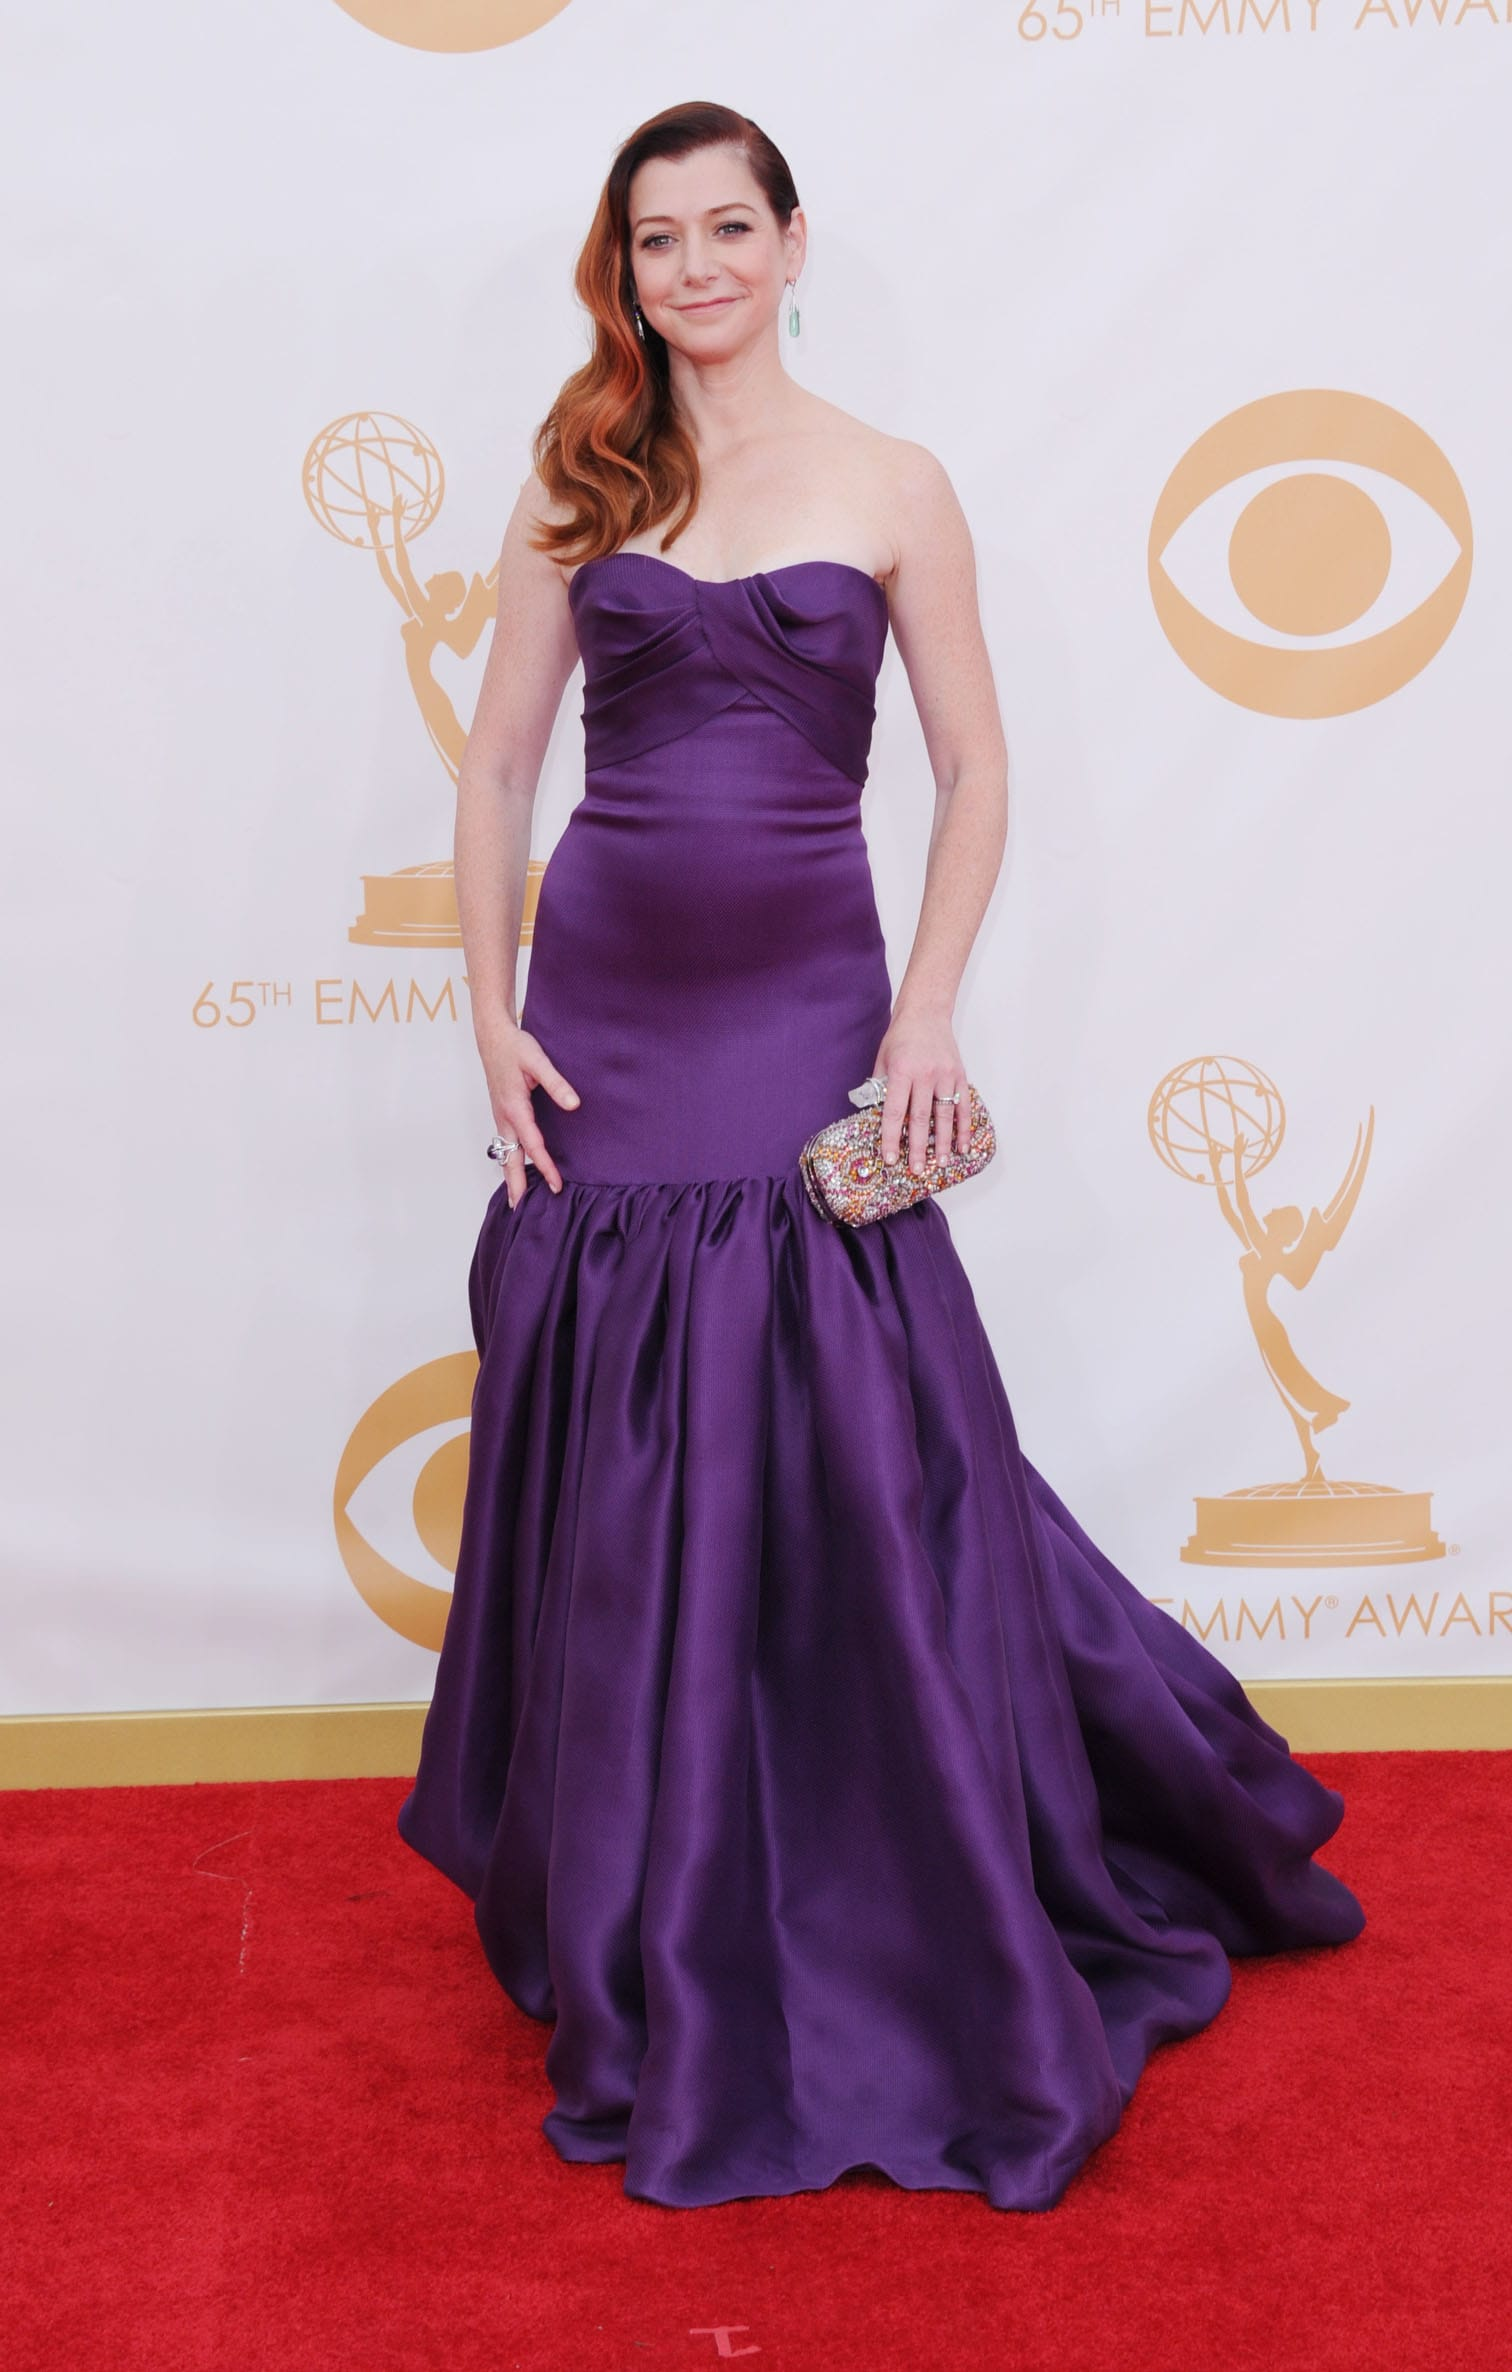 Alyson Hanningan Wore A Purple Strapless Prom Dress By Marchesa To The Primetime Emmy Awards Red